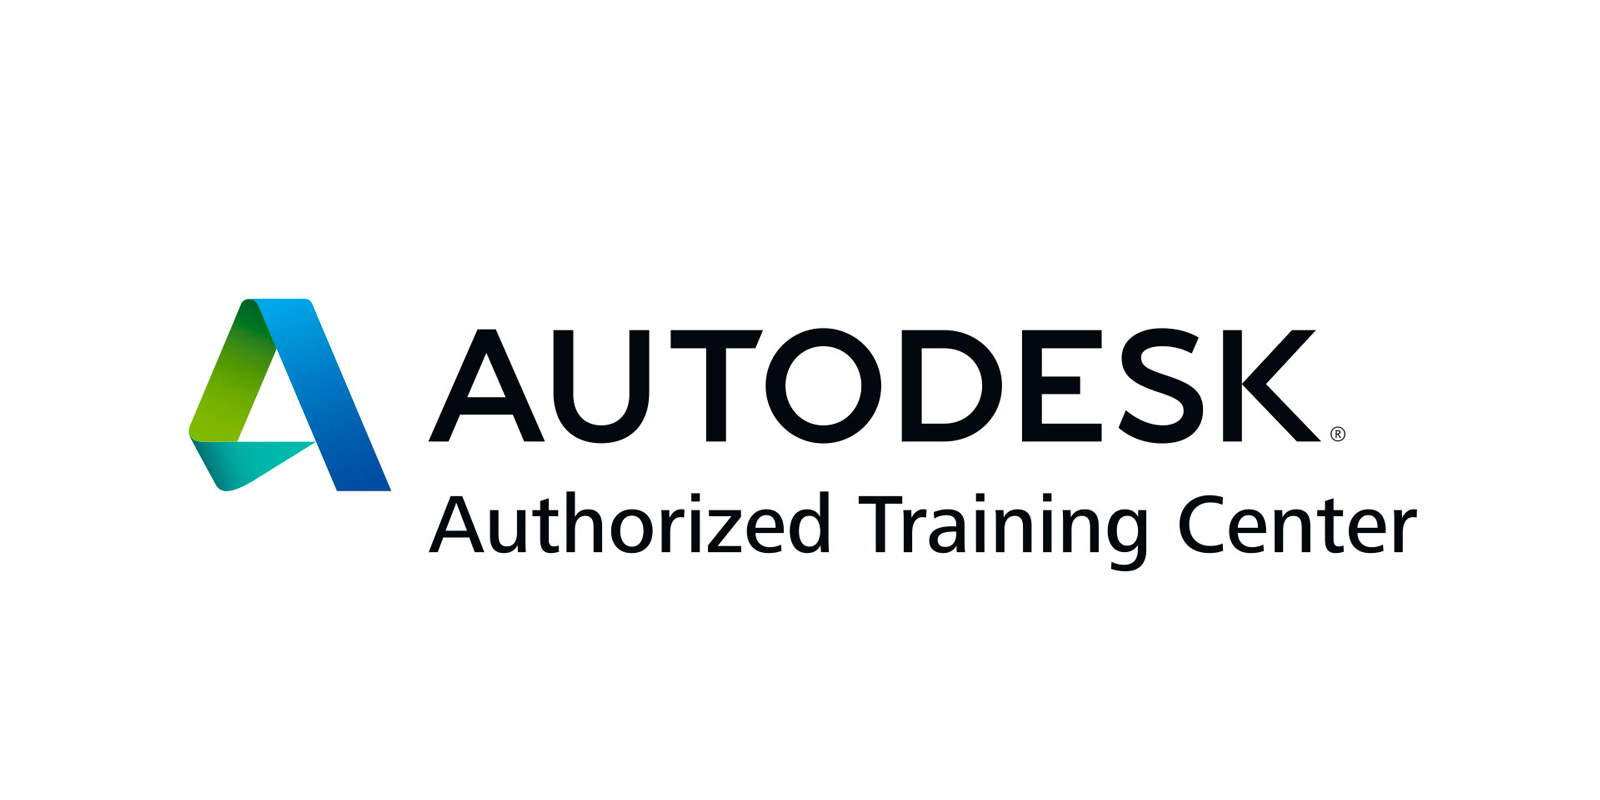 Autodesk Authorised Training Center Bimlearning